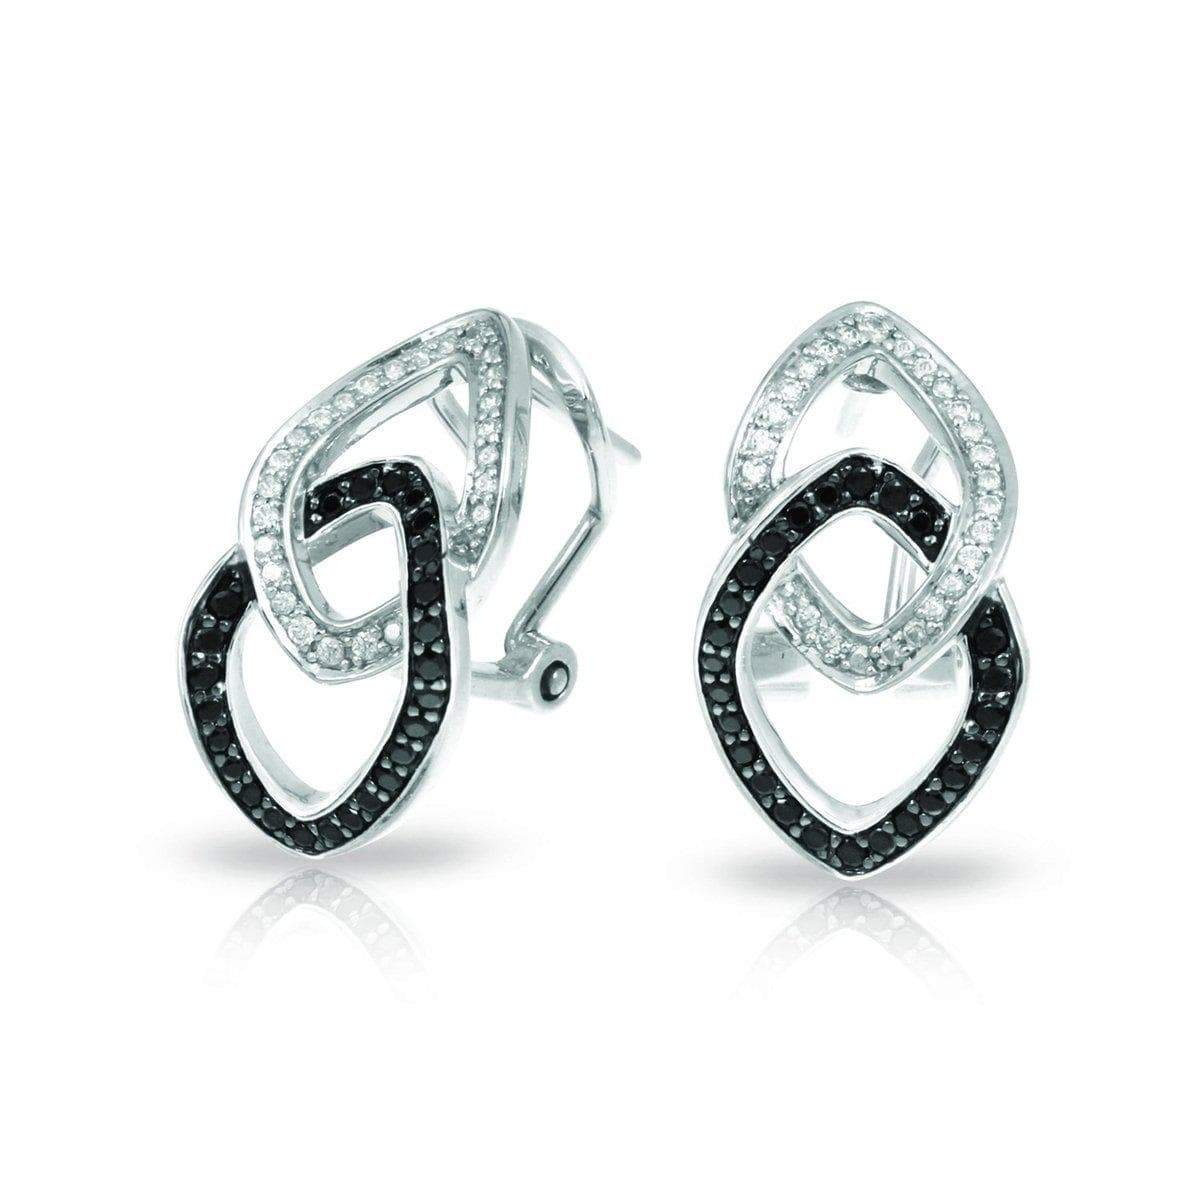 Duet Black and White Earrings